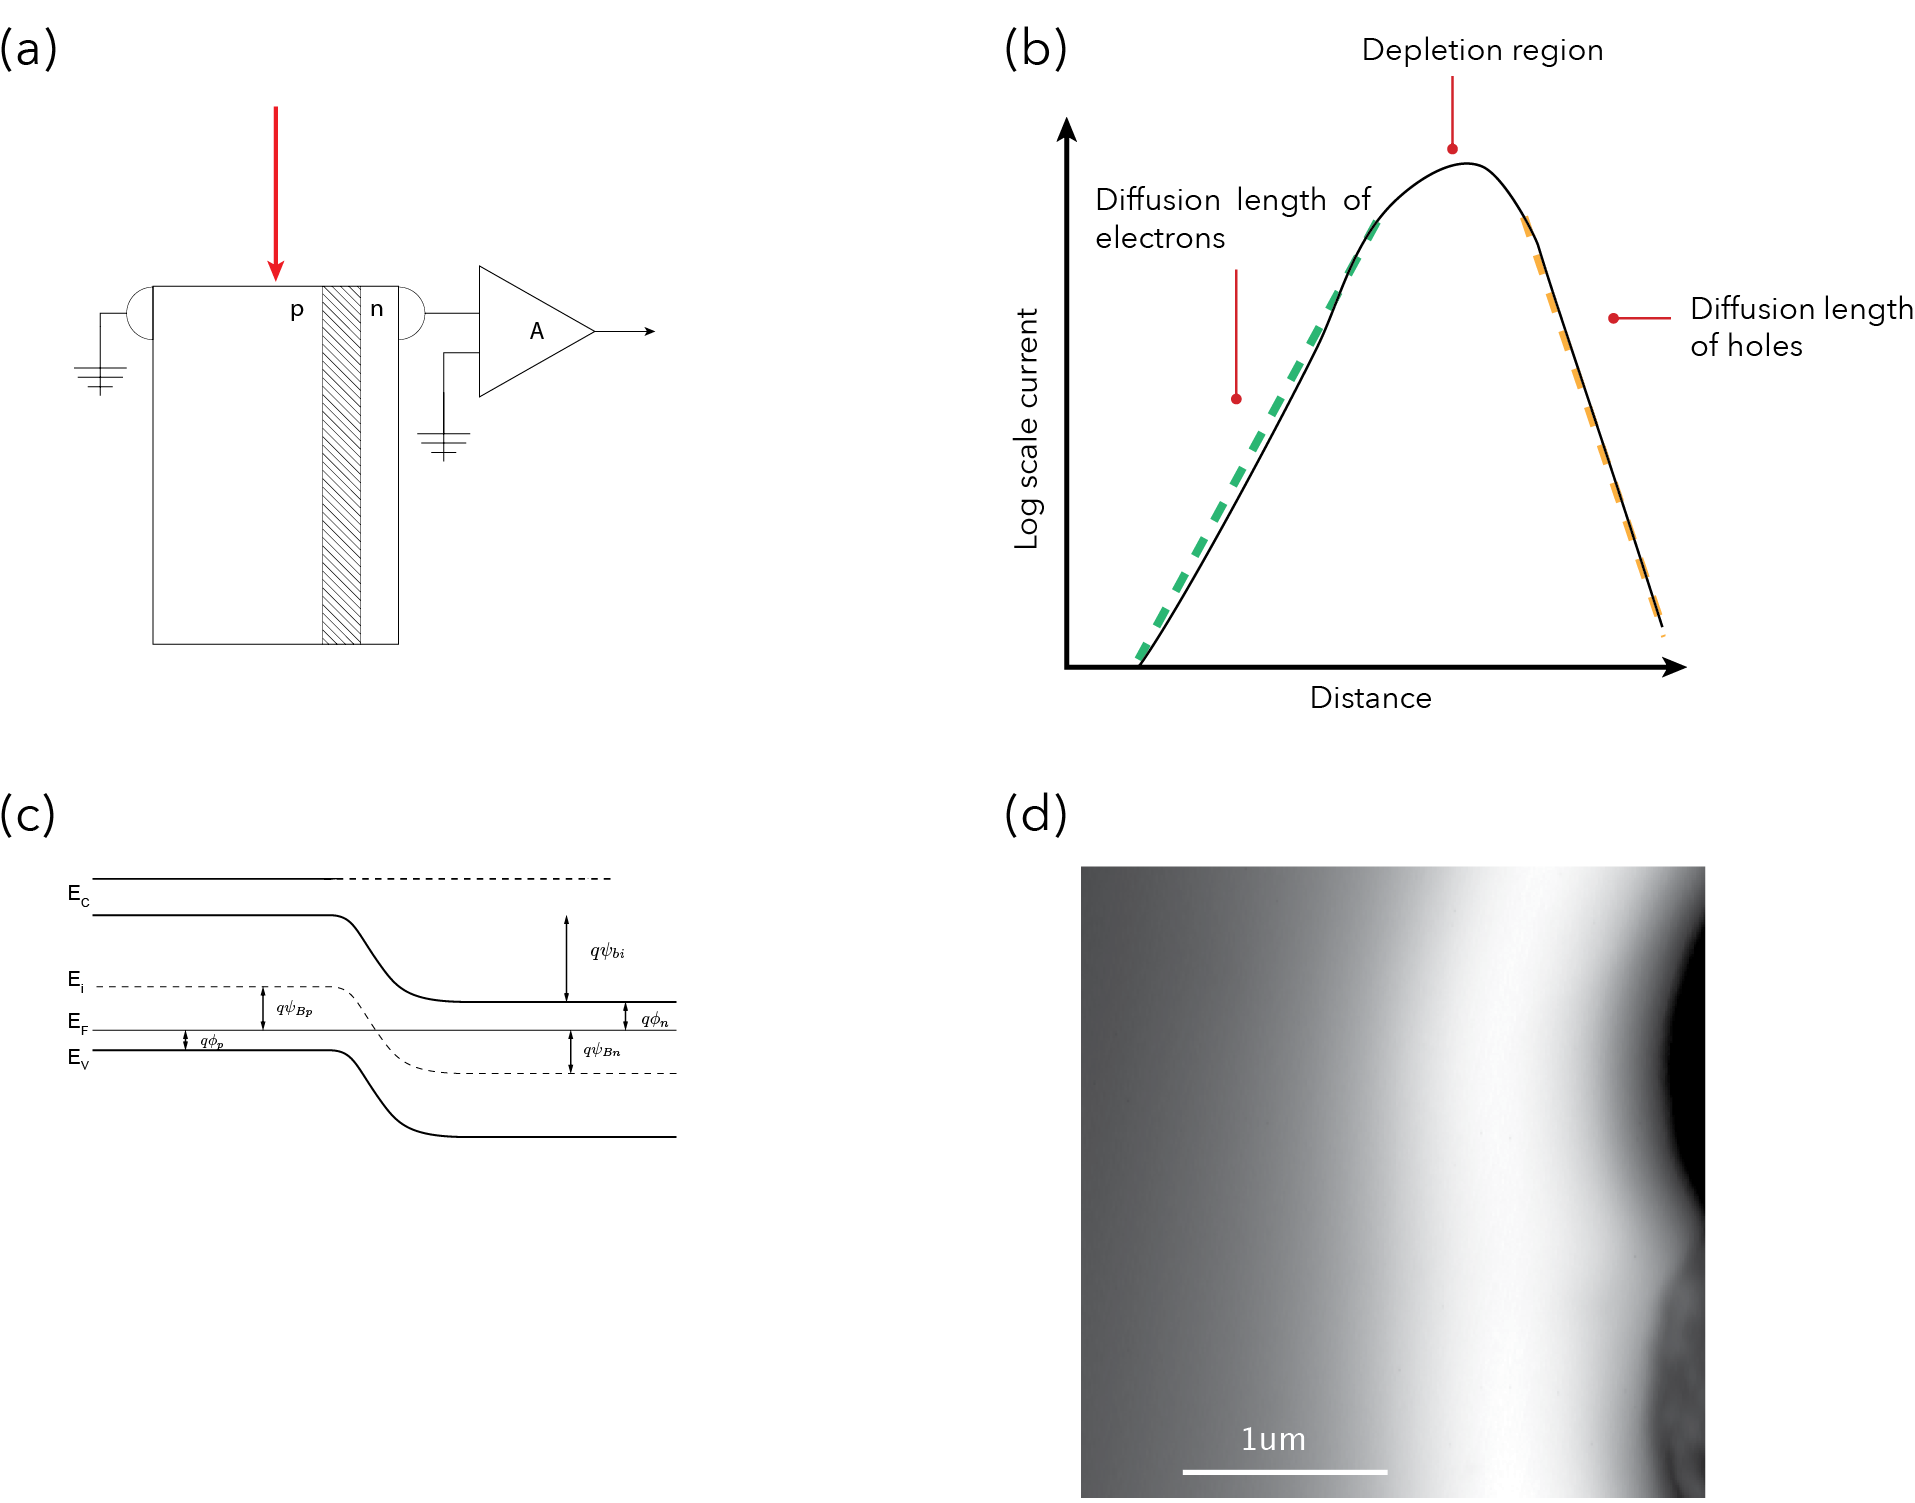 PN junction of solar cell  (a)EBIC configuration for cross-sectional images, n type side is connected to pre amplifier while p type side is connected to ground allowing for efficient carrier separation. (b) Log scale current response of profile extracted from (d) shows the diffusion lengths of minority carriers on either side of the depletion region. (c) Band diagram for PN junction with built in potential (d) EBIC image of the cross section of a PN junction of a solar cell.